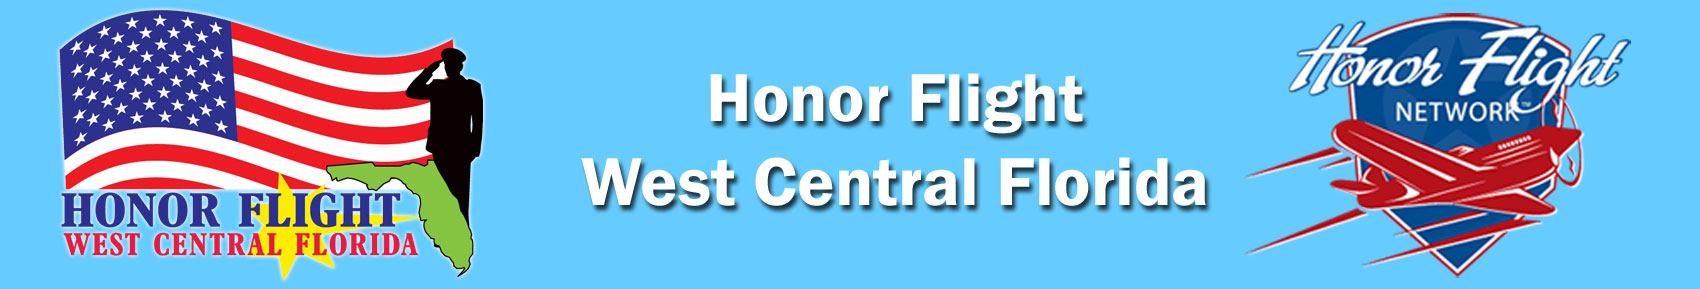 Honor Flight West Central Florida